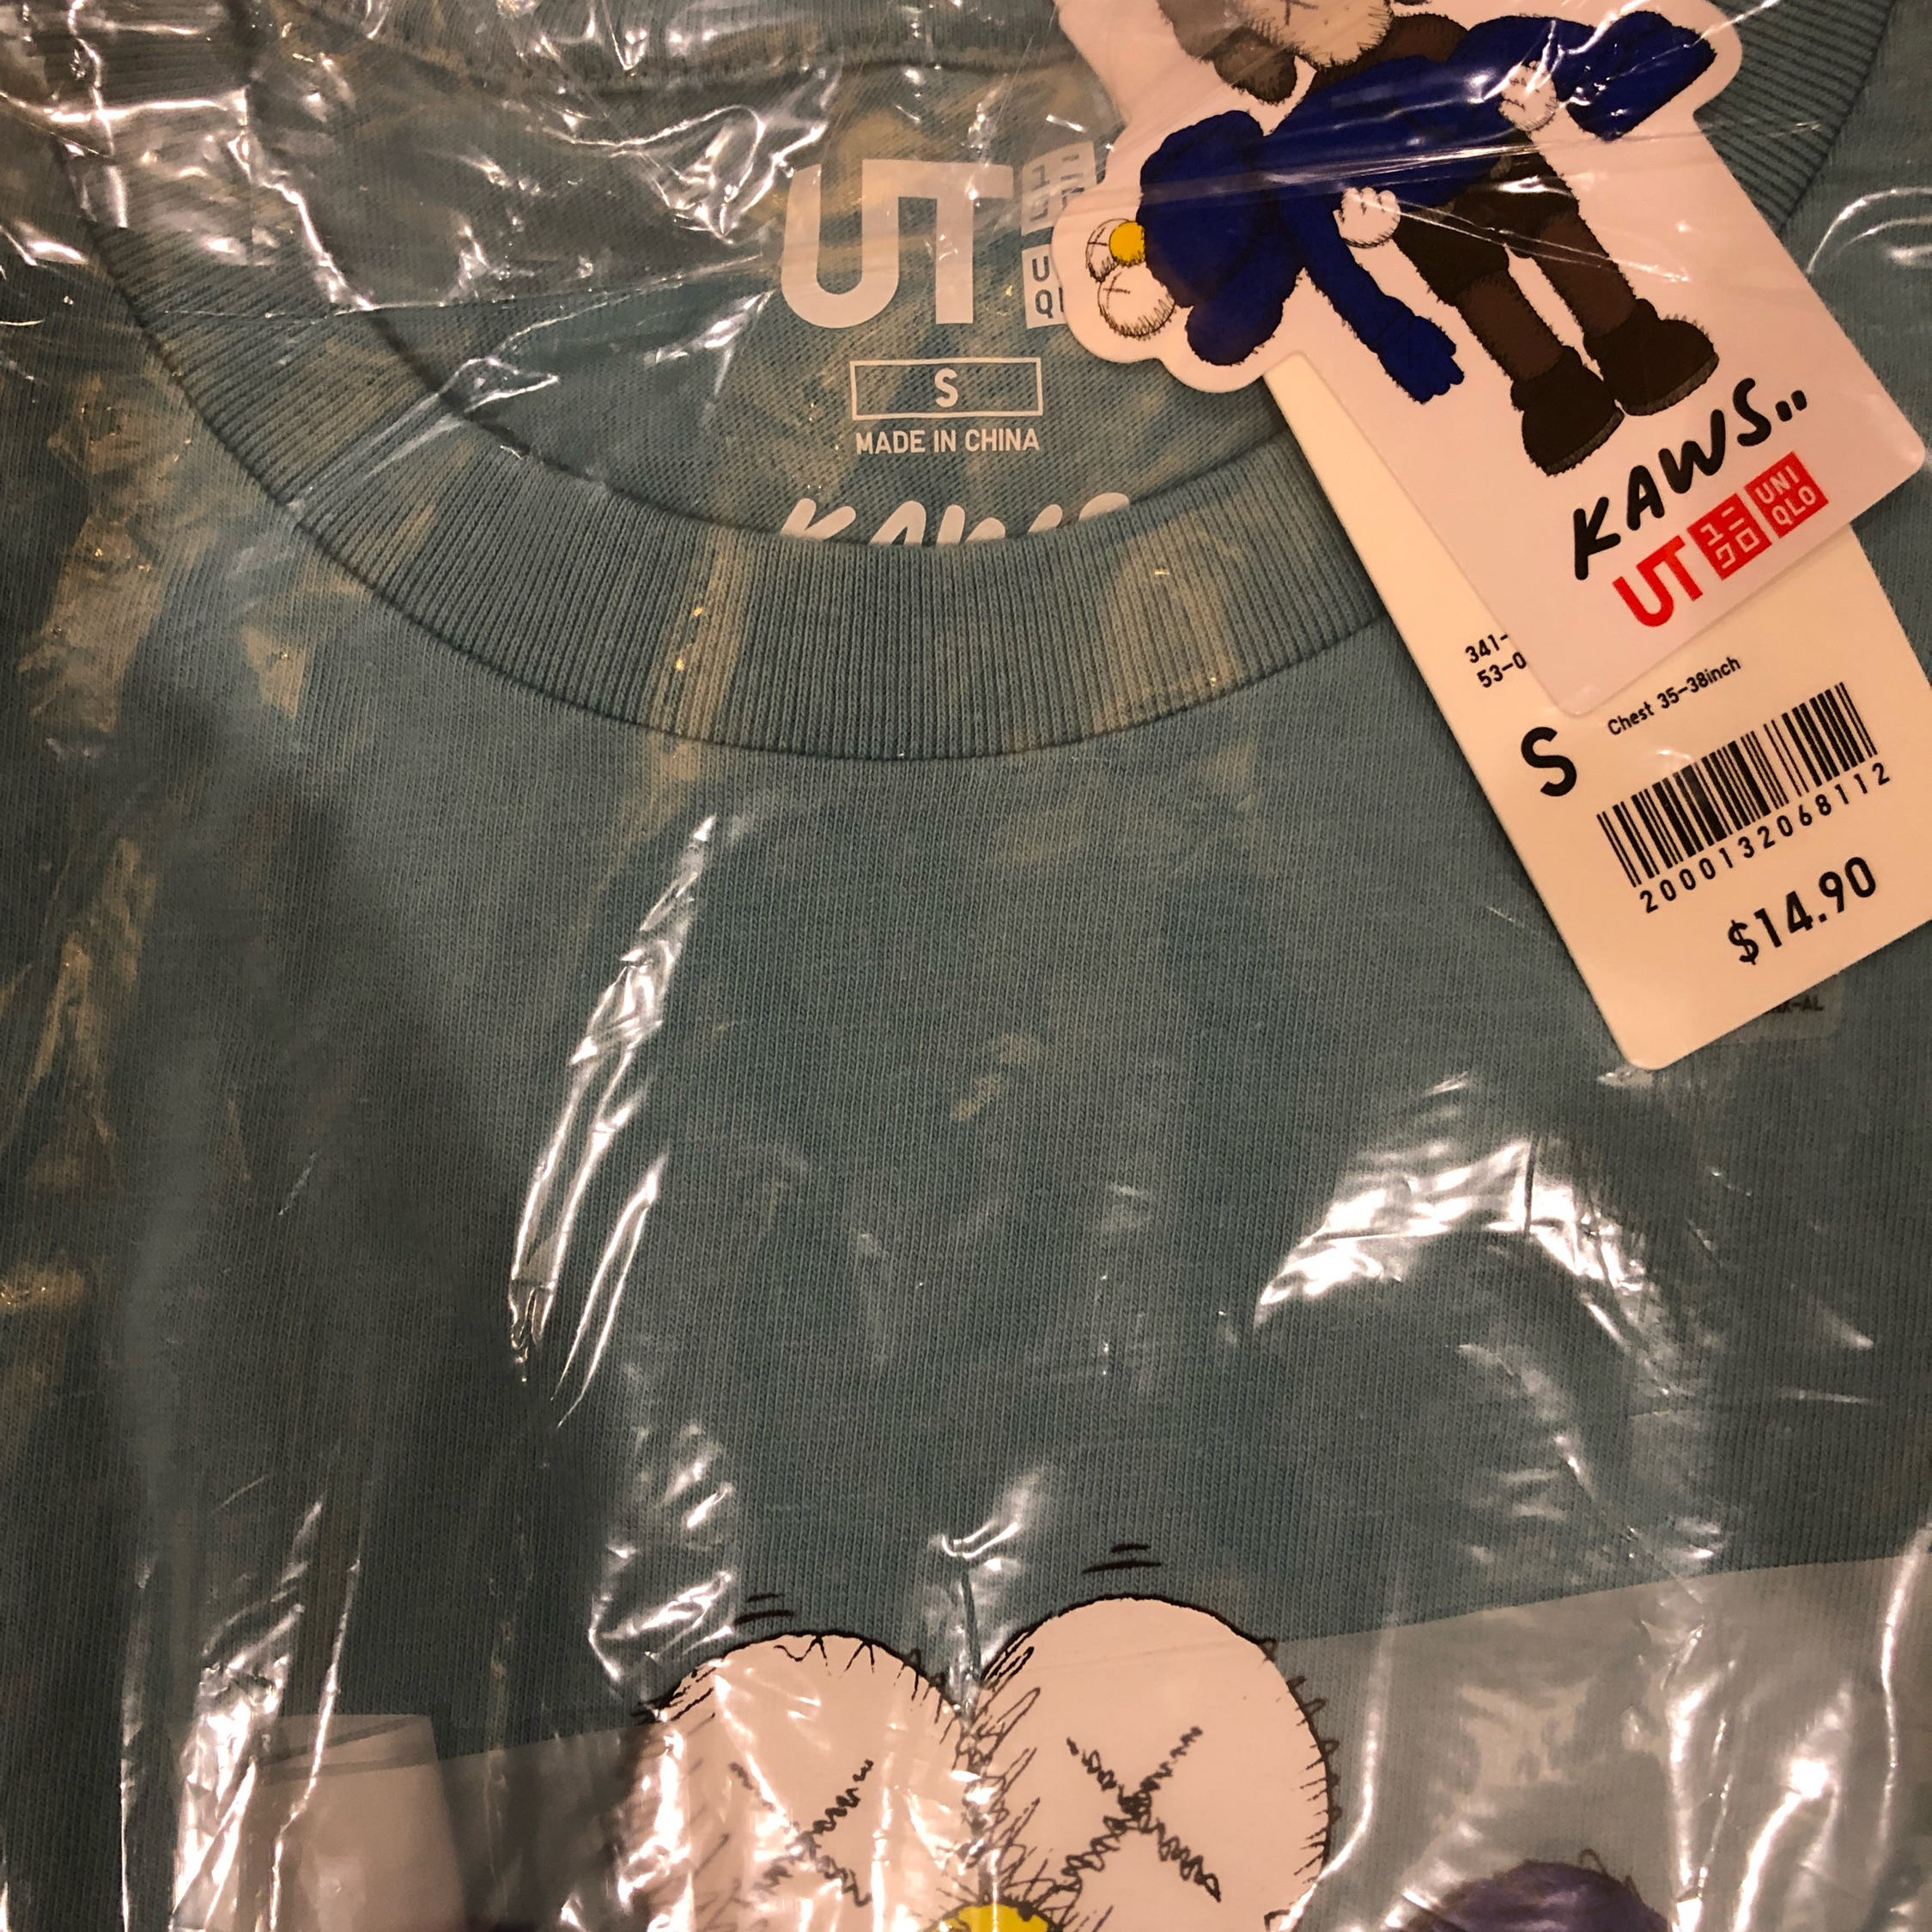 Last Kaws X Uniqlo Collaboration Blue Bff (S)